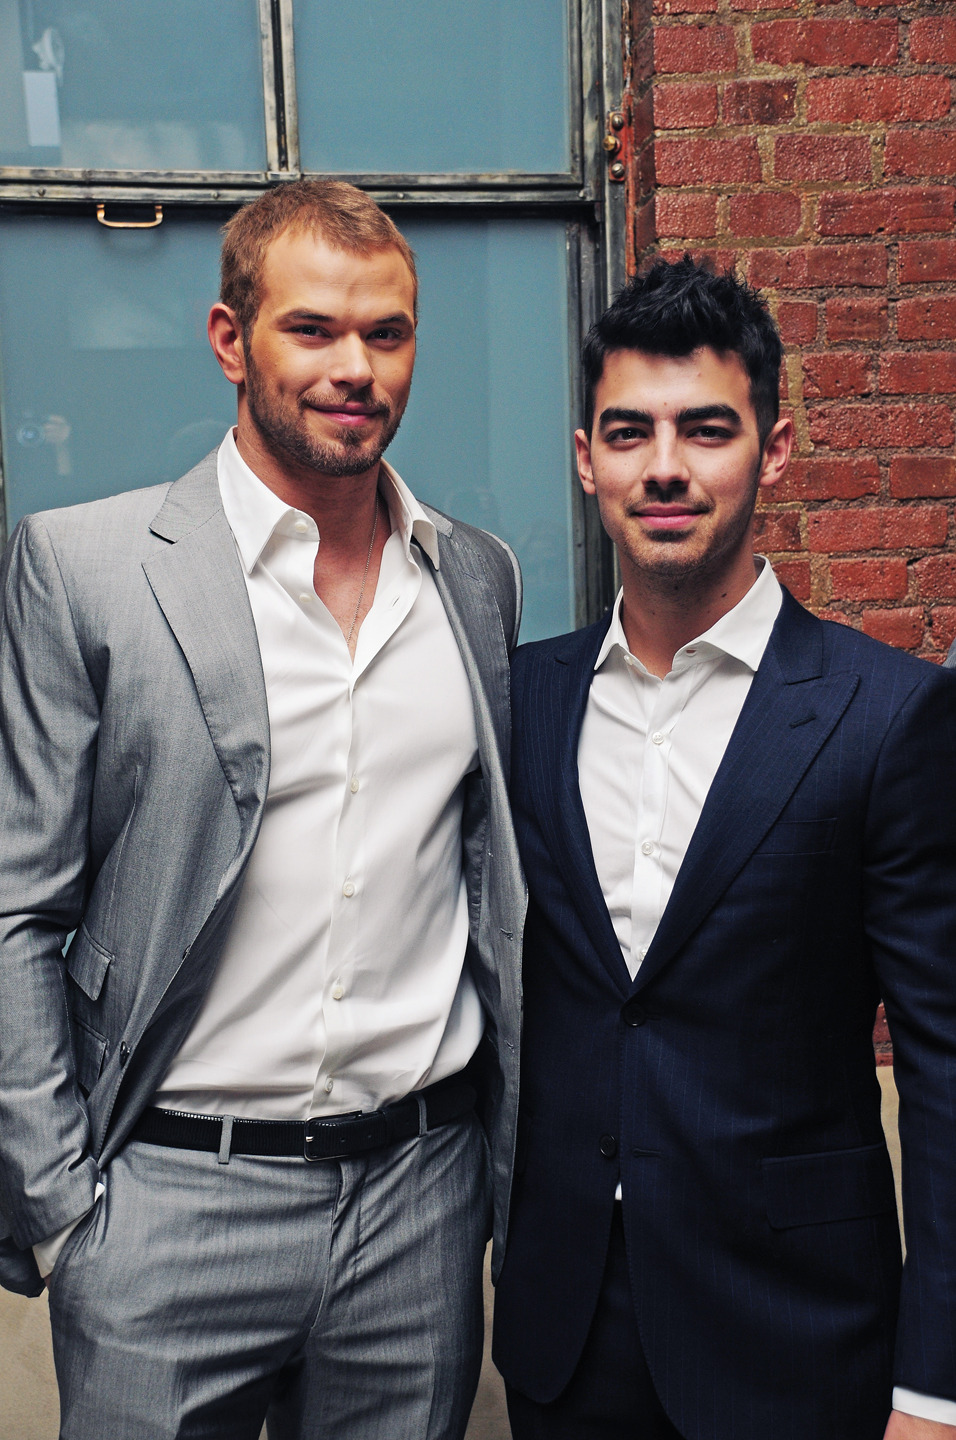 Kellan Lutz & Joe Jonas backstage @ the Simon Spurr show in Milk Studios